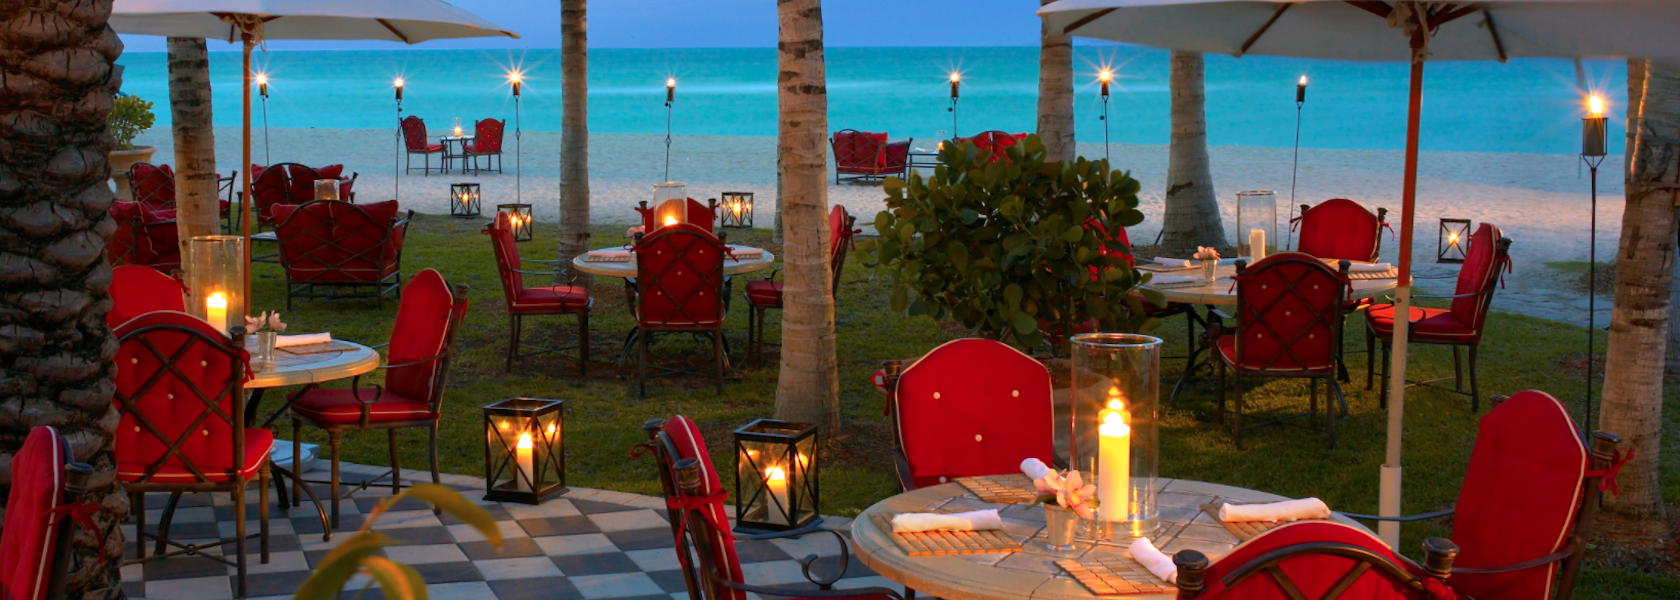 Evening with tiki torches around the outdoor dining area next to the turquoise ocean